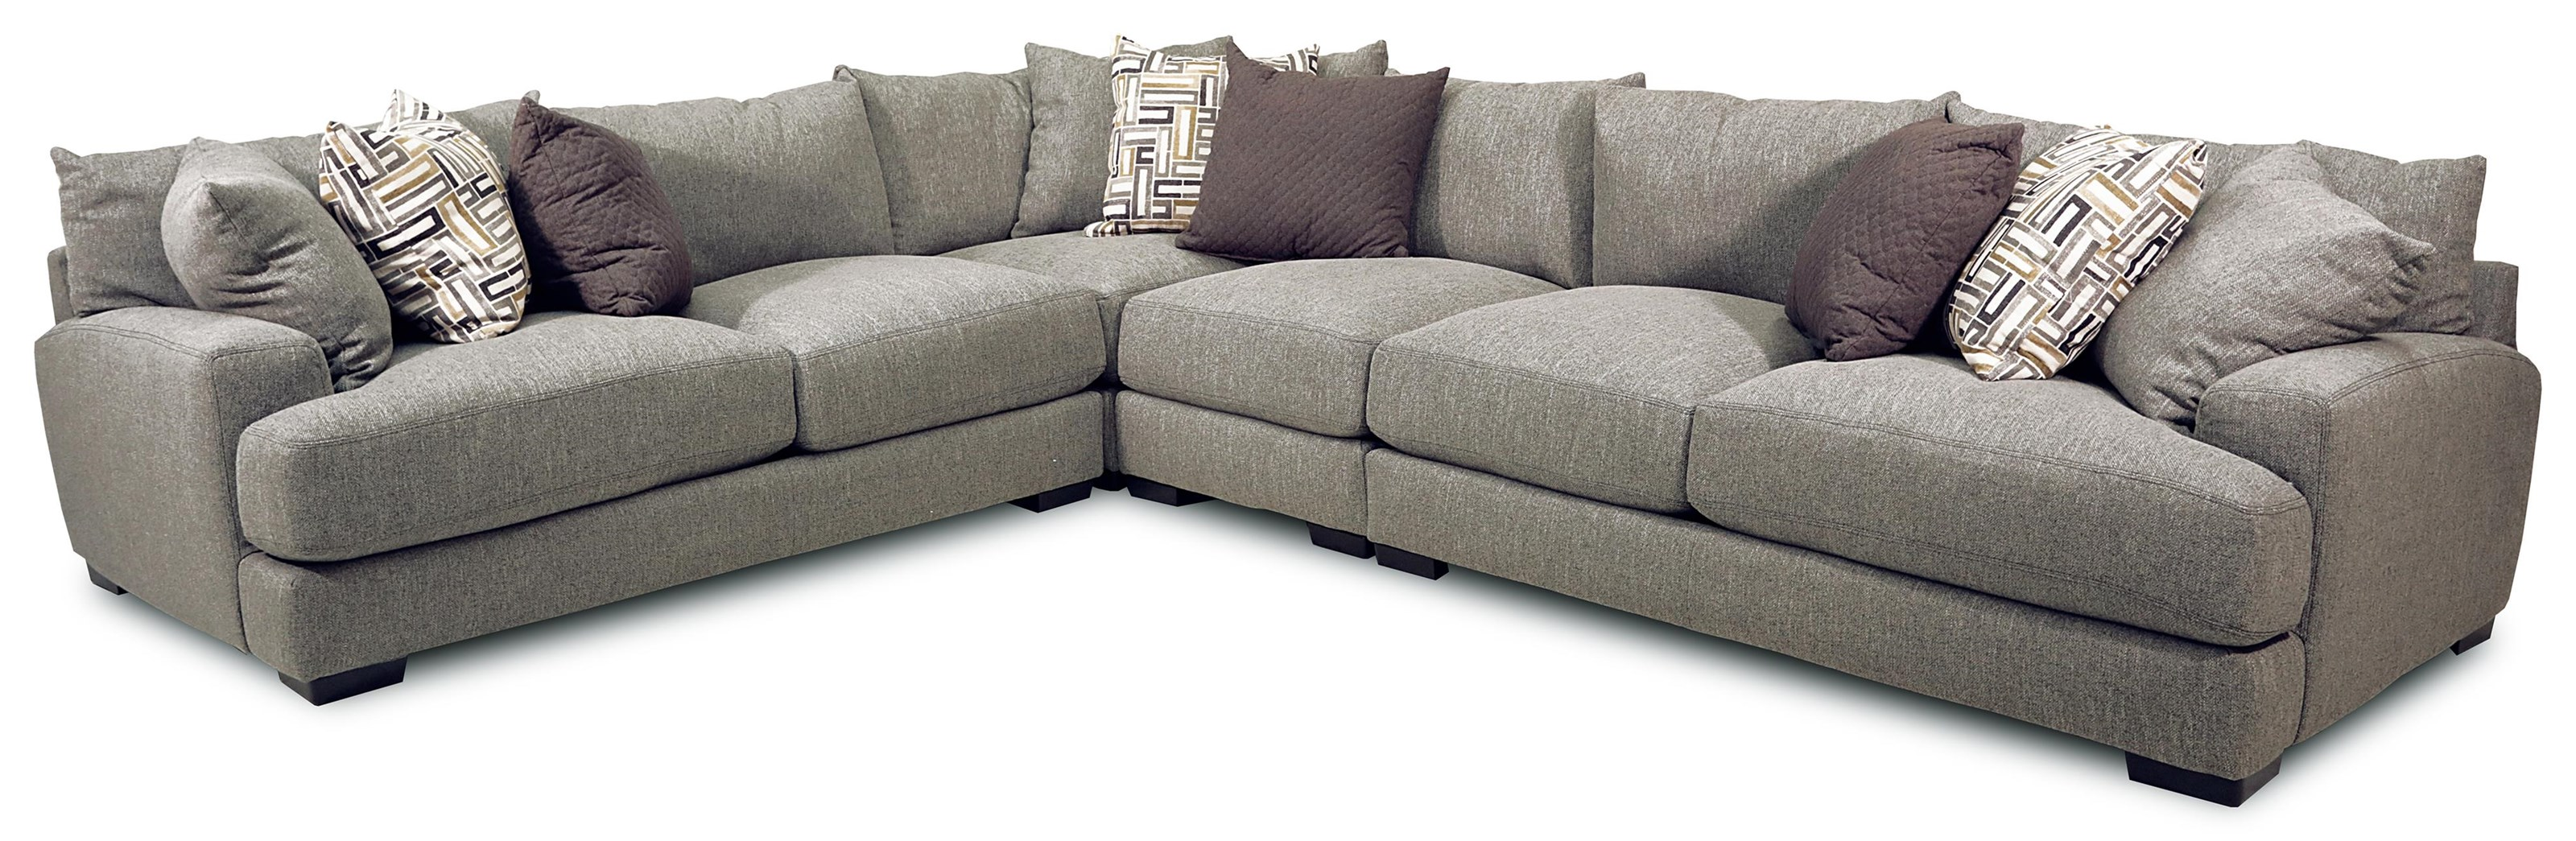 Franklin Brentwood 4-Piece Stationary Sectional - Item Number: 18818-4PC